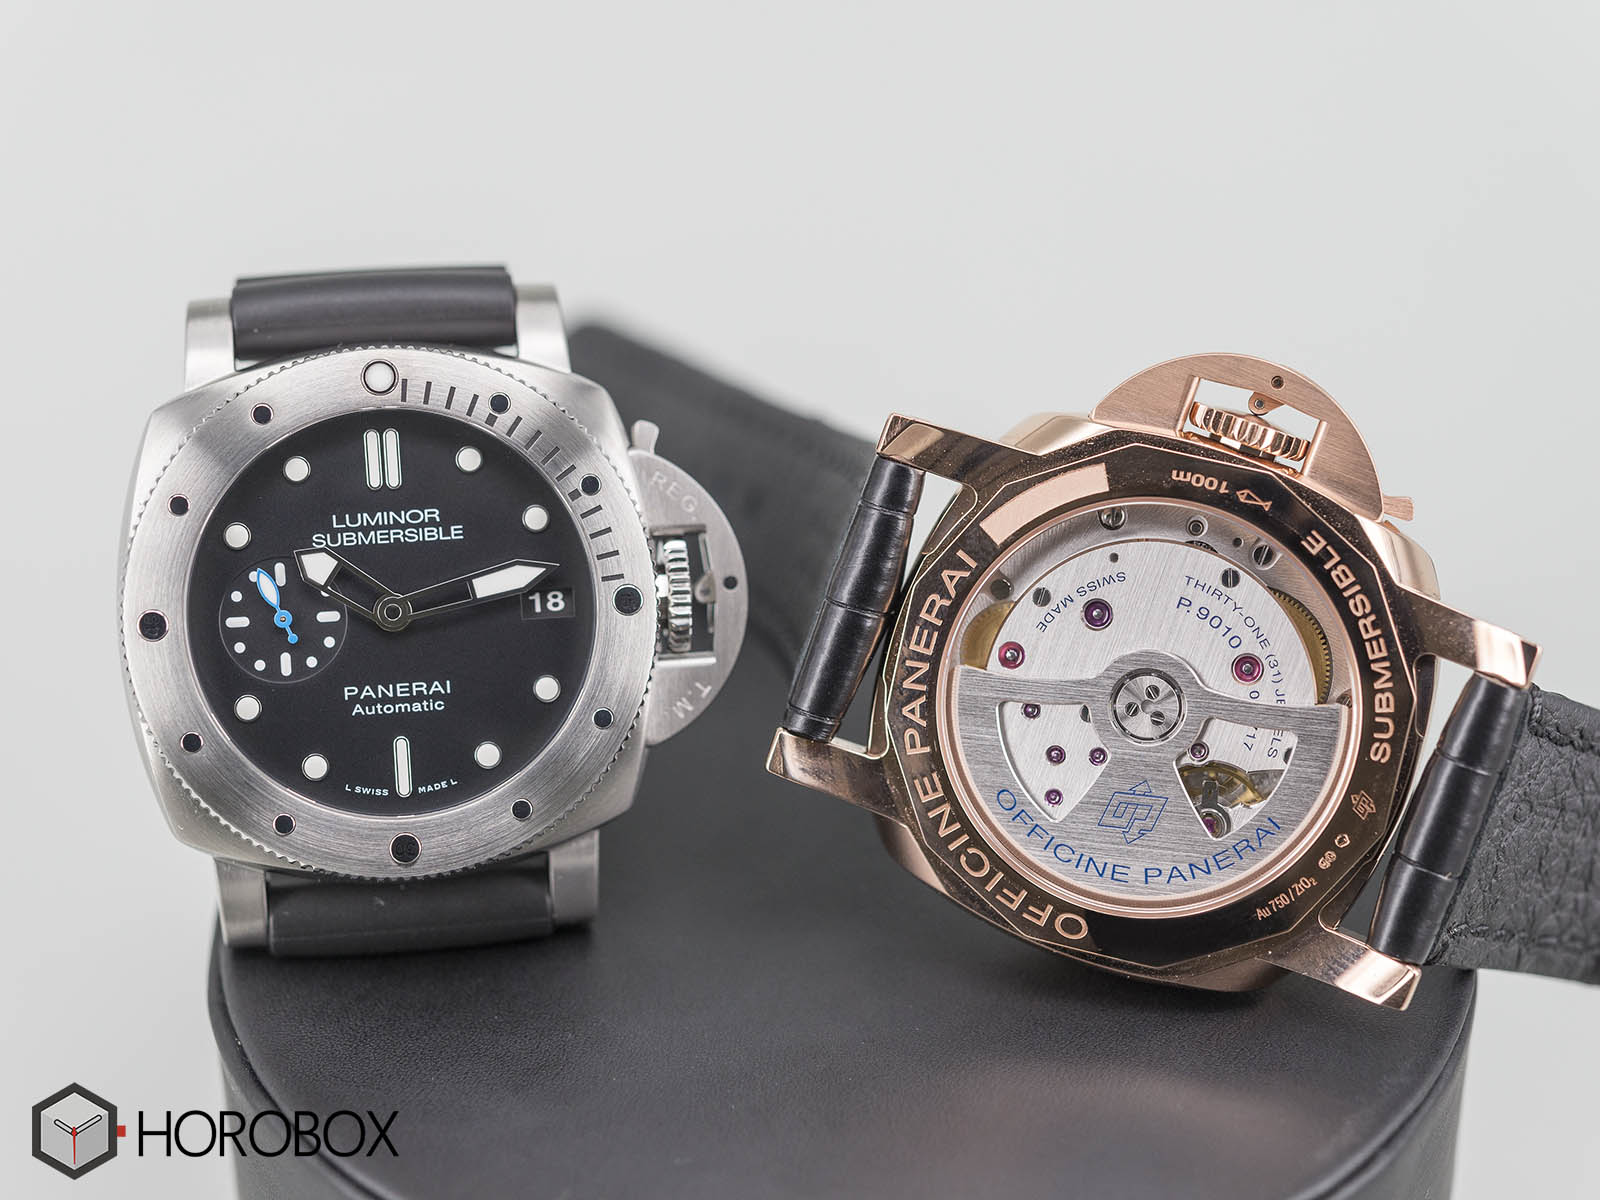 panerai-luminor-1950-submersible-pam00682-pam00684-7.jpg